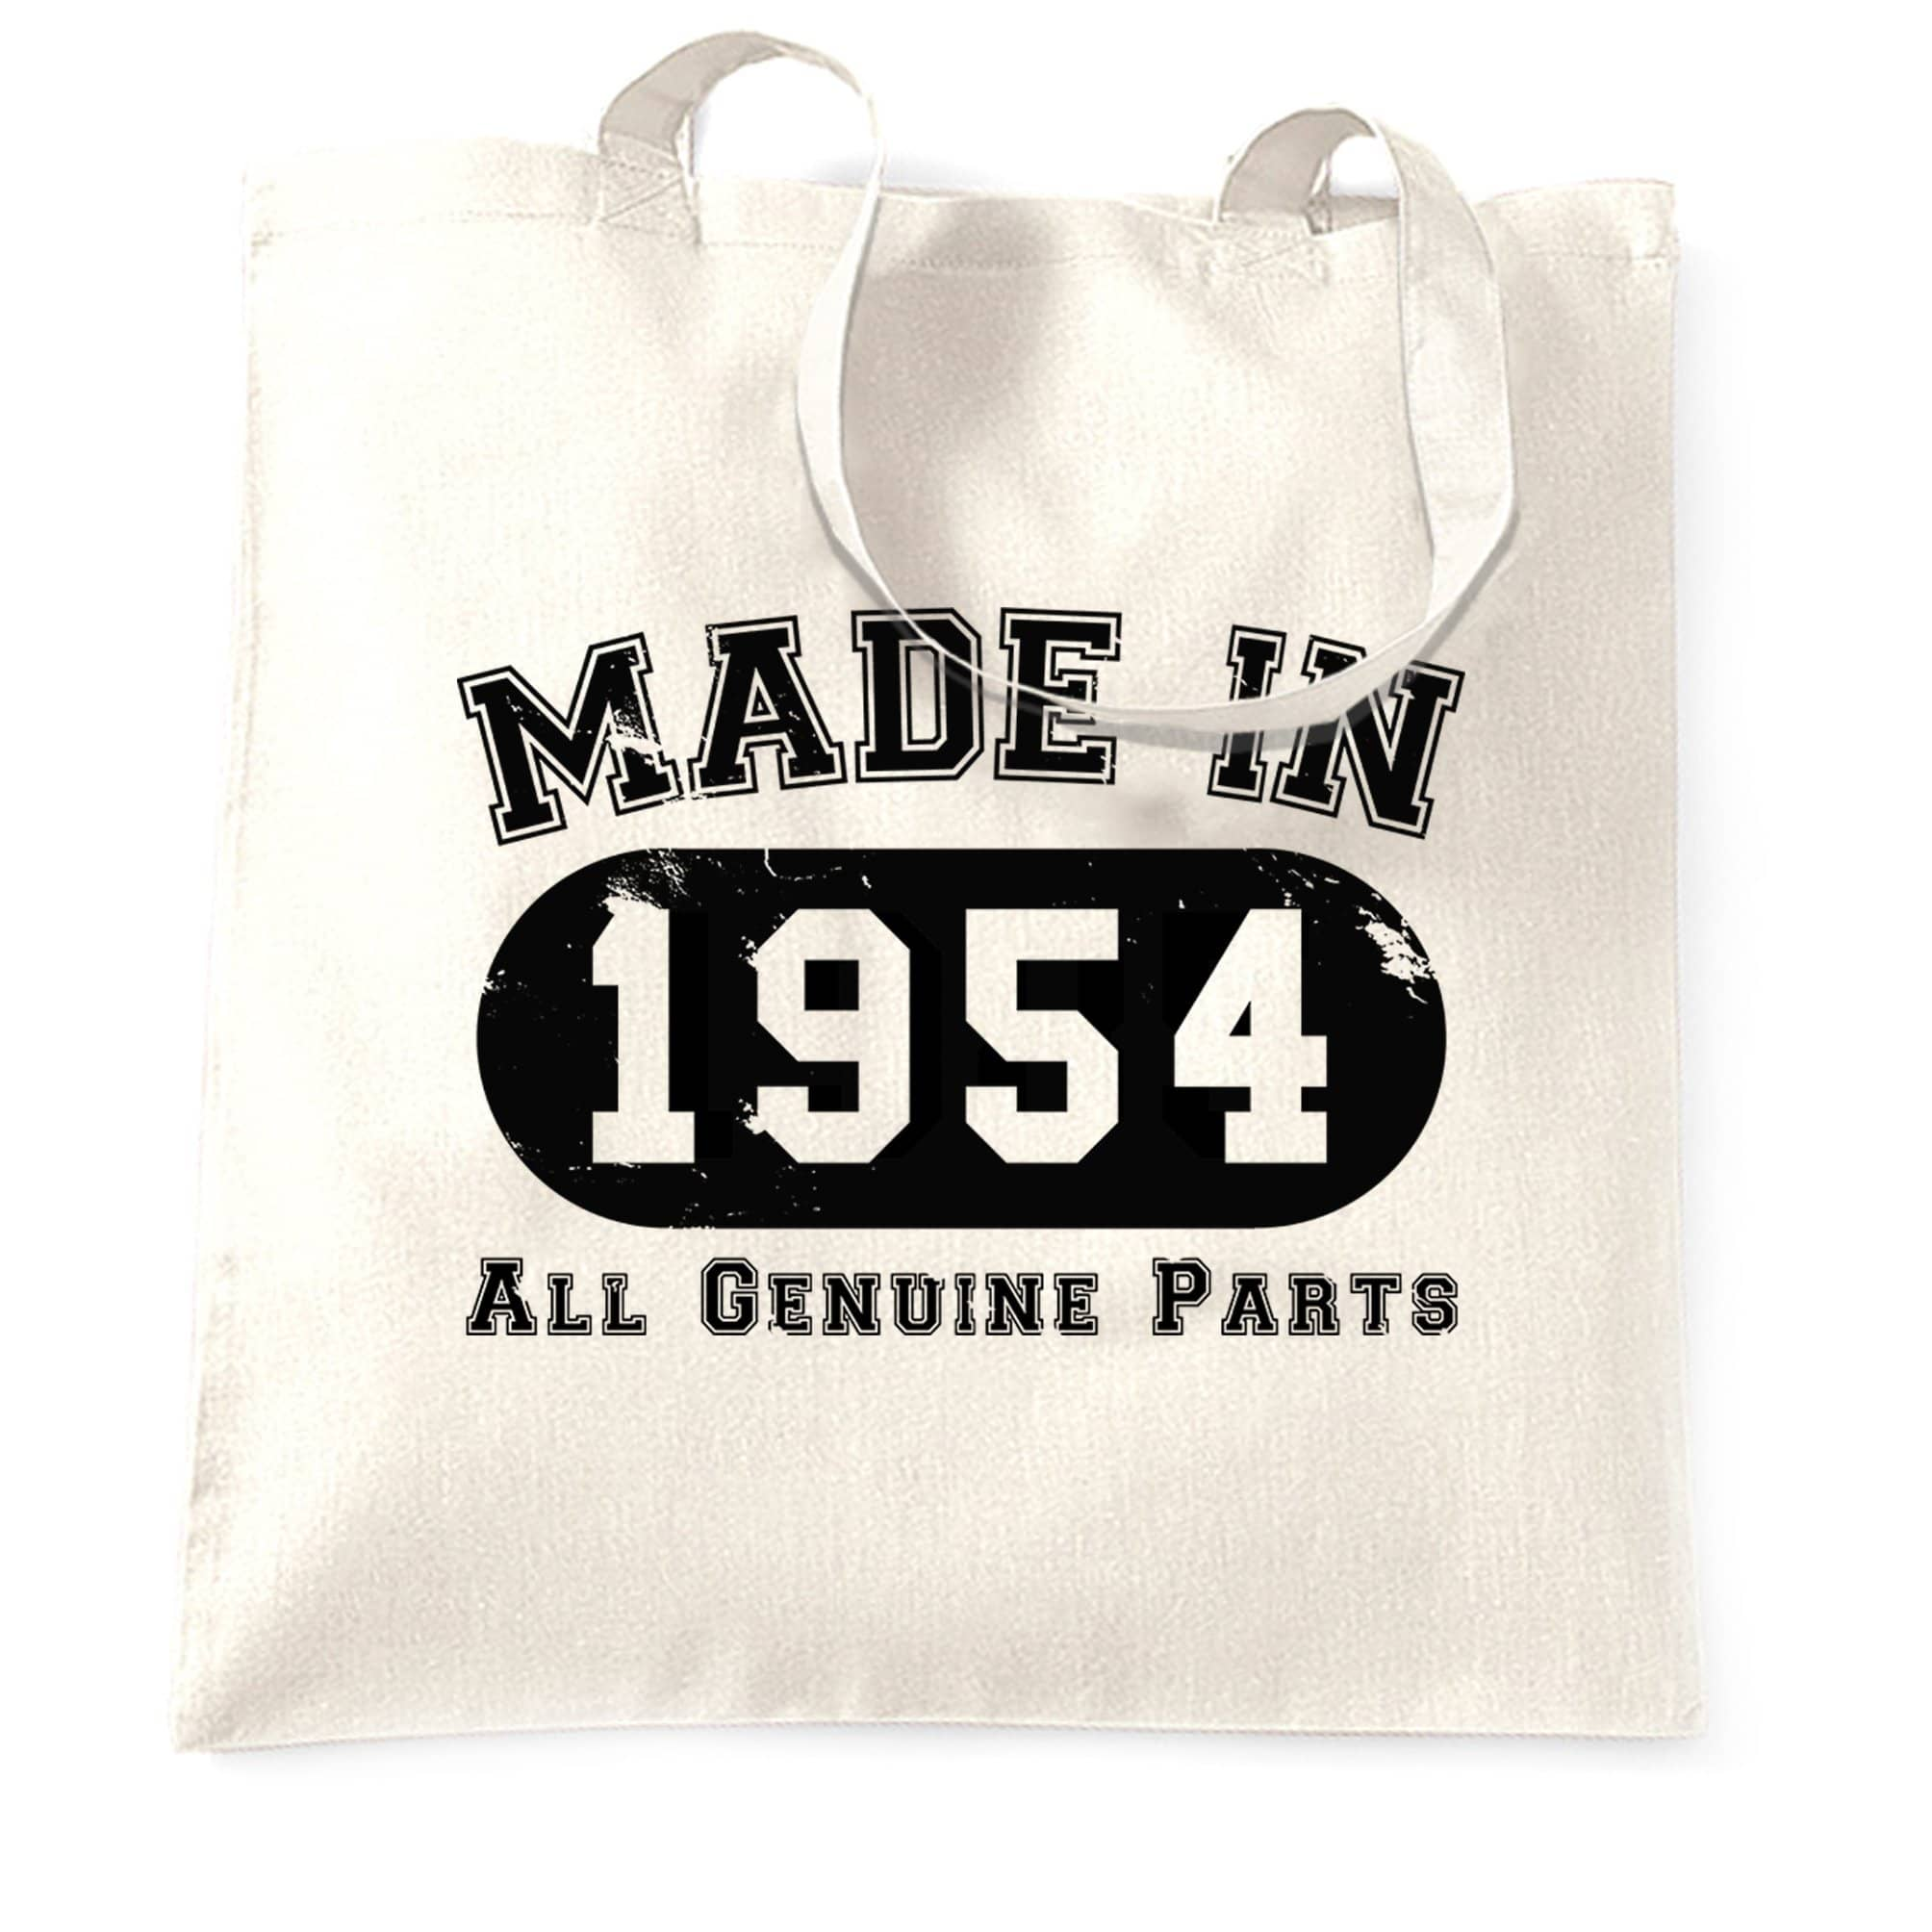 Birthday Tote Bag Made in 1954 All Genuine Parts